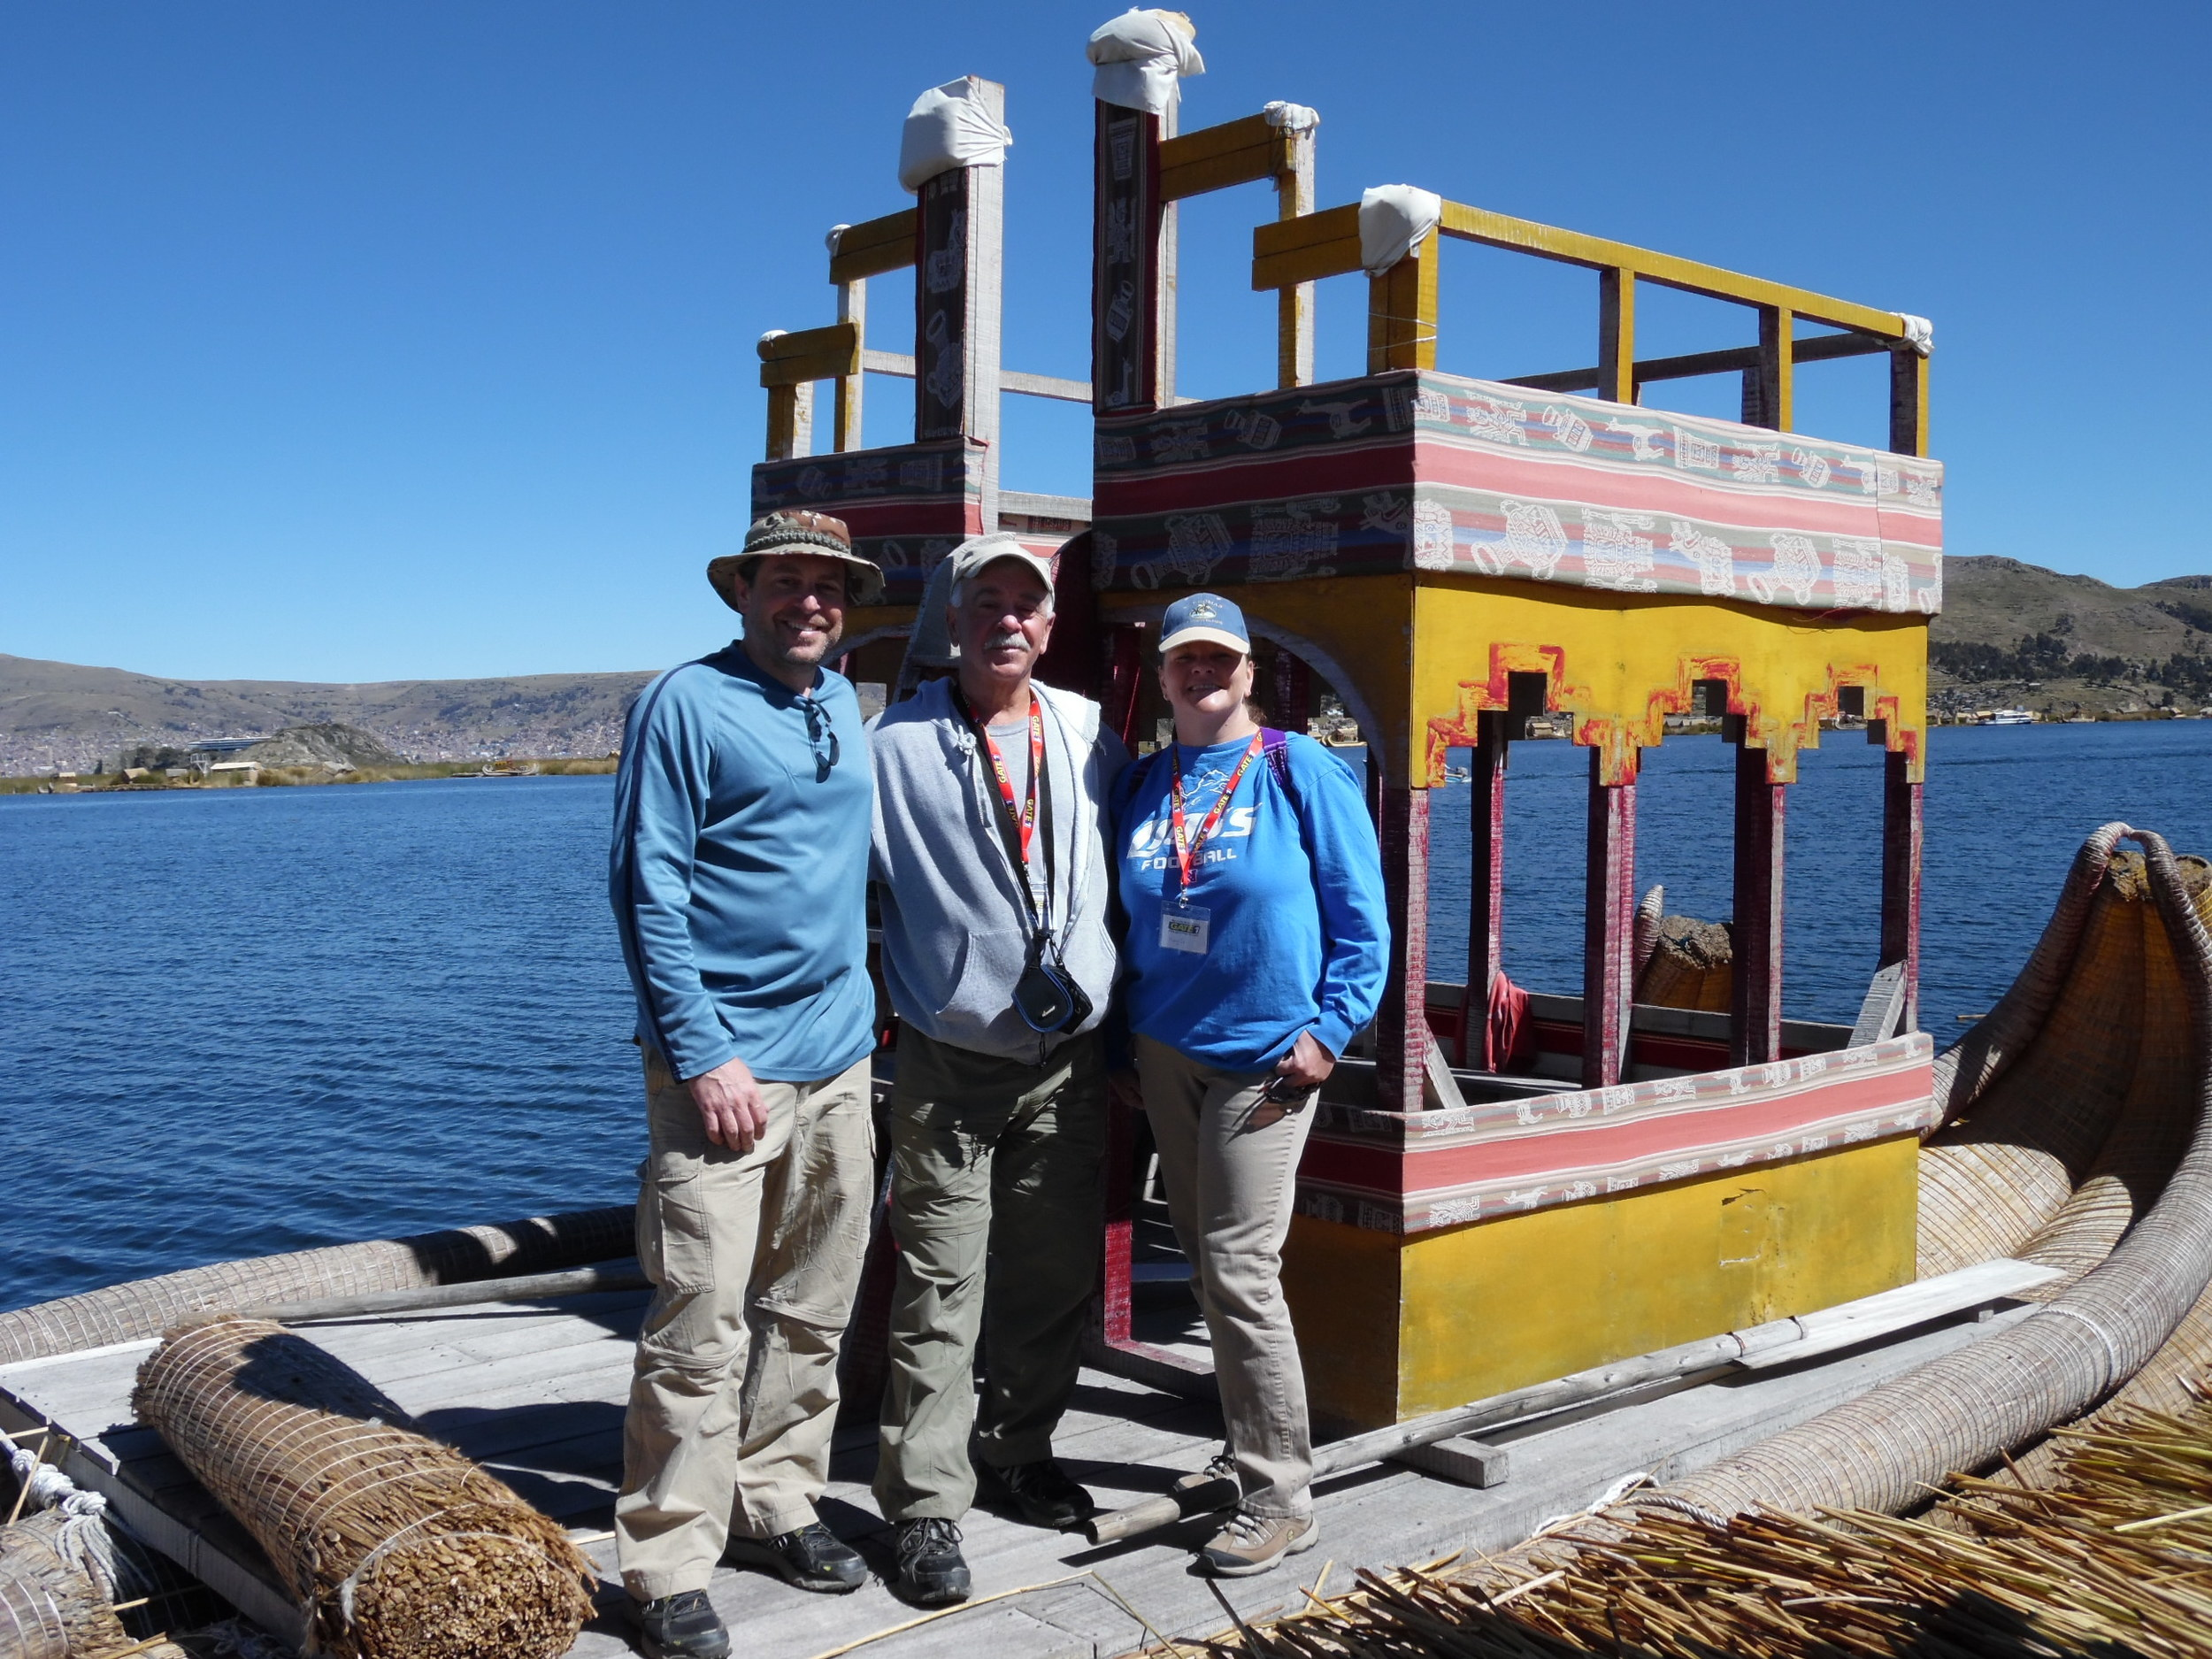 MJ, my dad and I on Lake Titicaca in Peru